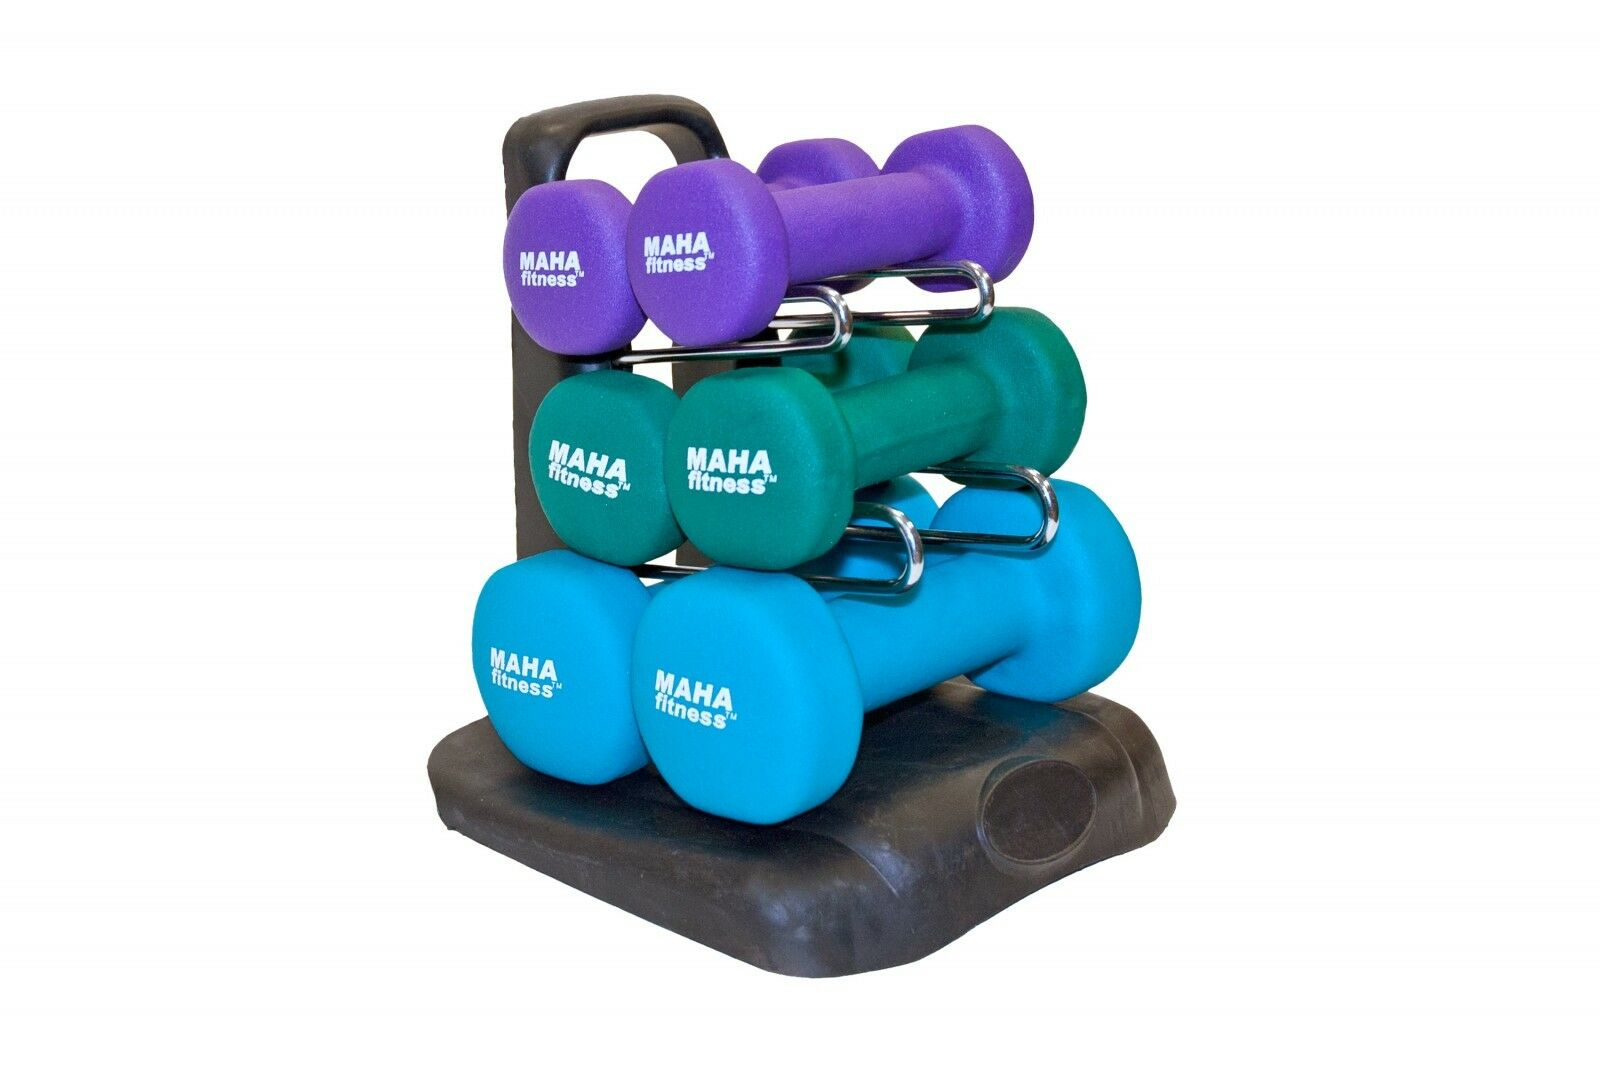 Maha Fitness Dumbbell Set With  Stand - 20 lbs. (MF-PV20)  a lot of surprises